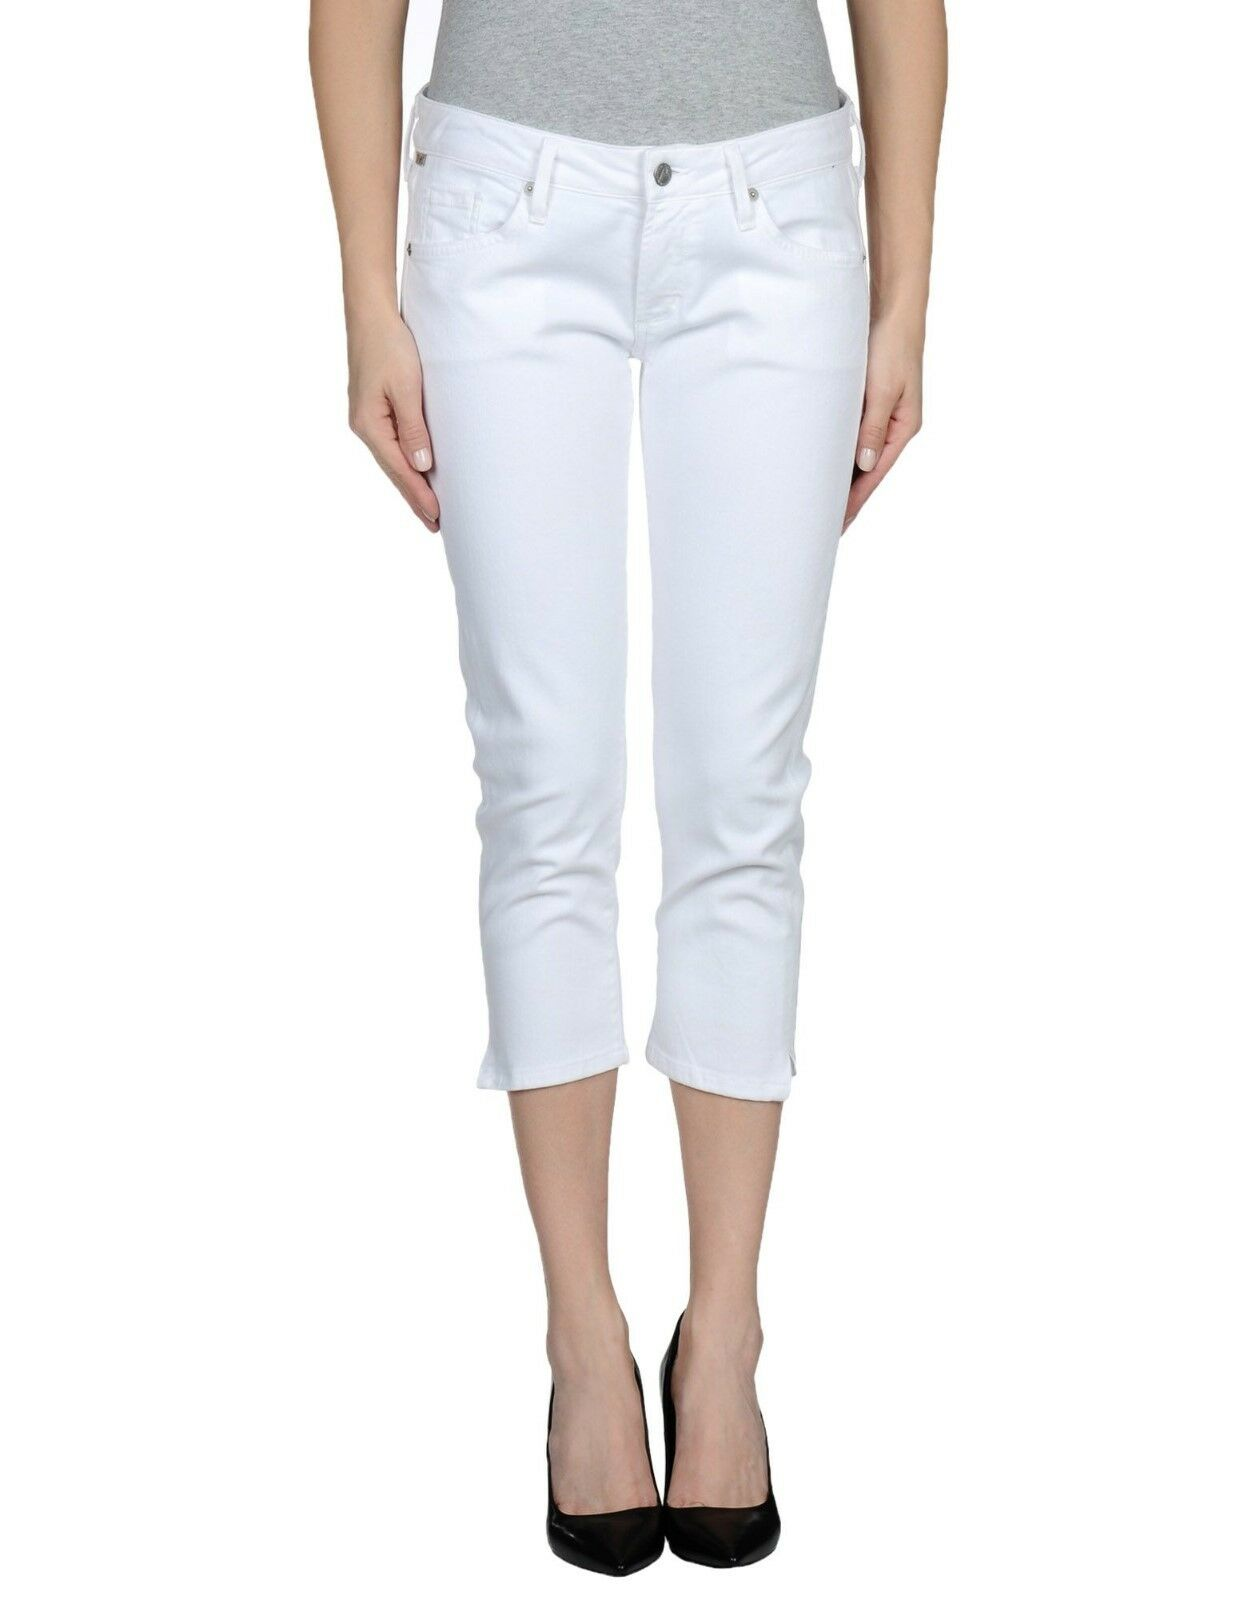 Citizens of Humanity Jerome Dahan White Denim Capris Racer Skinny Pants- W34 L21